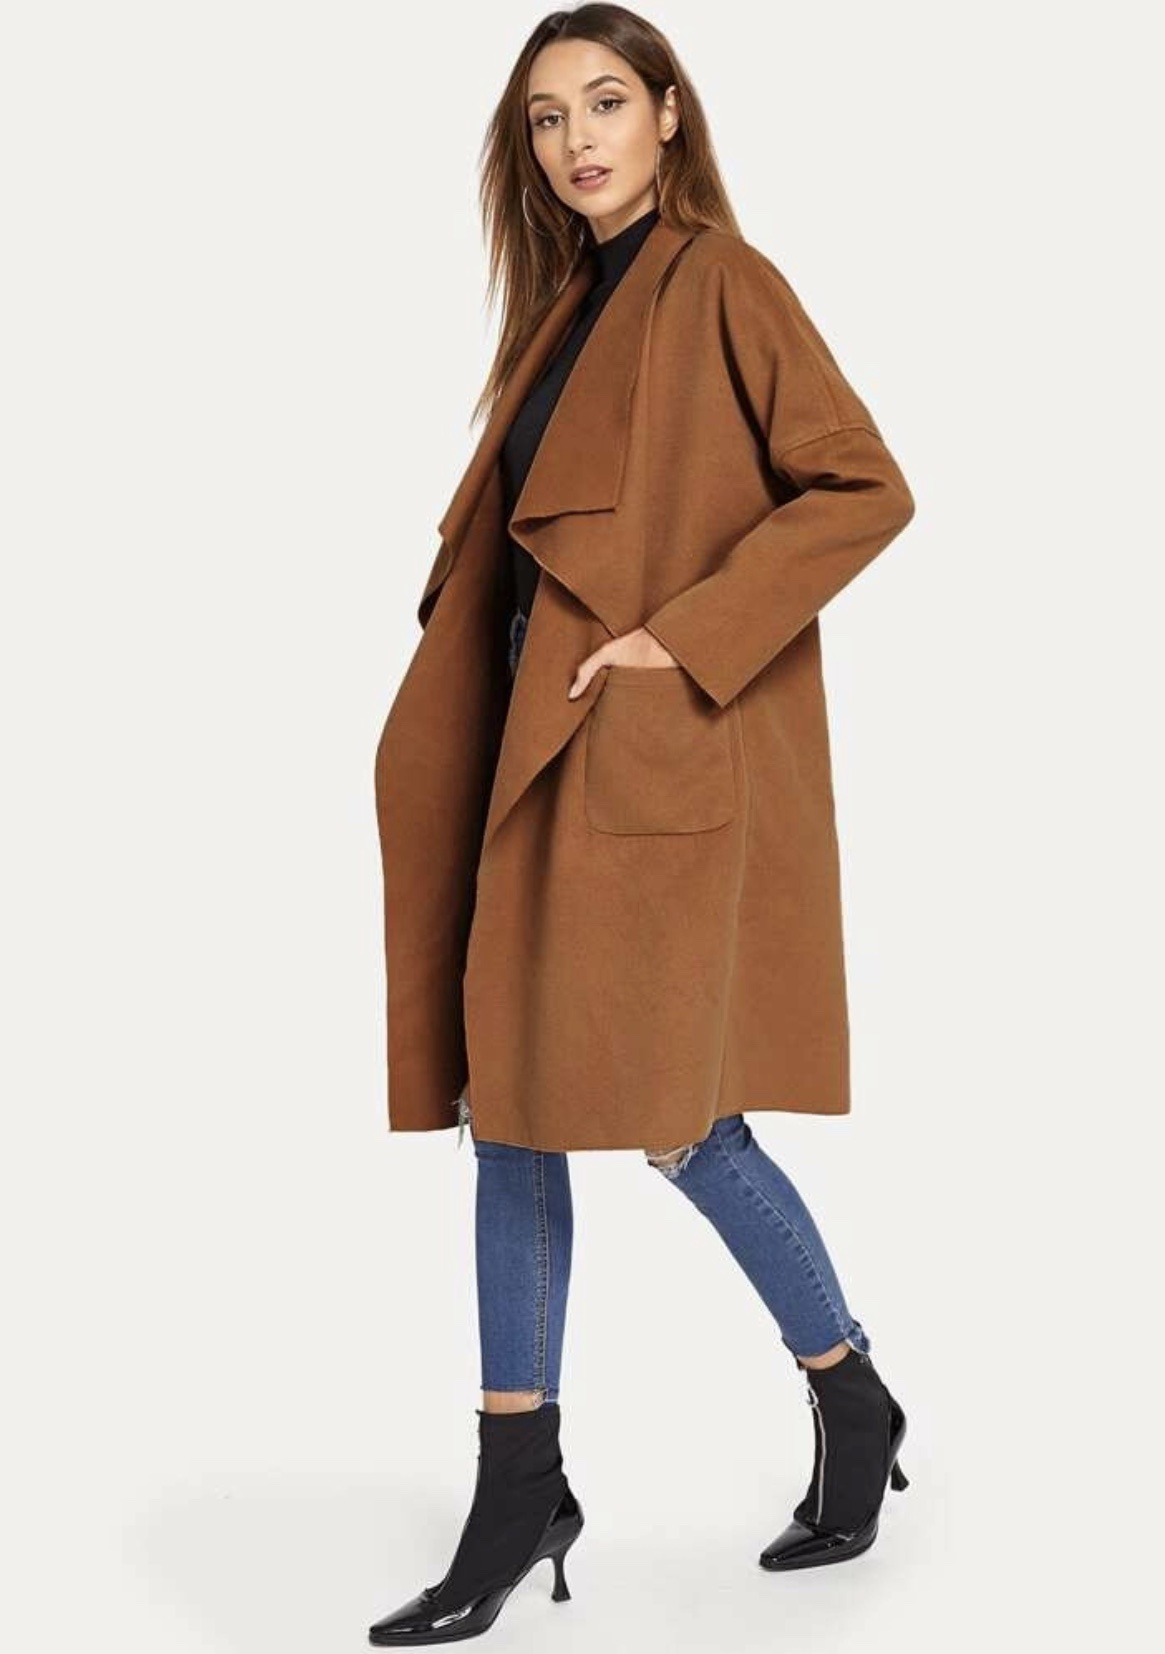 Shein Waterfall Coat